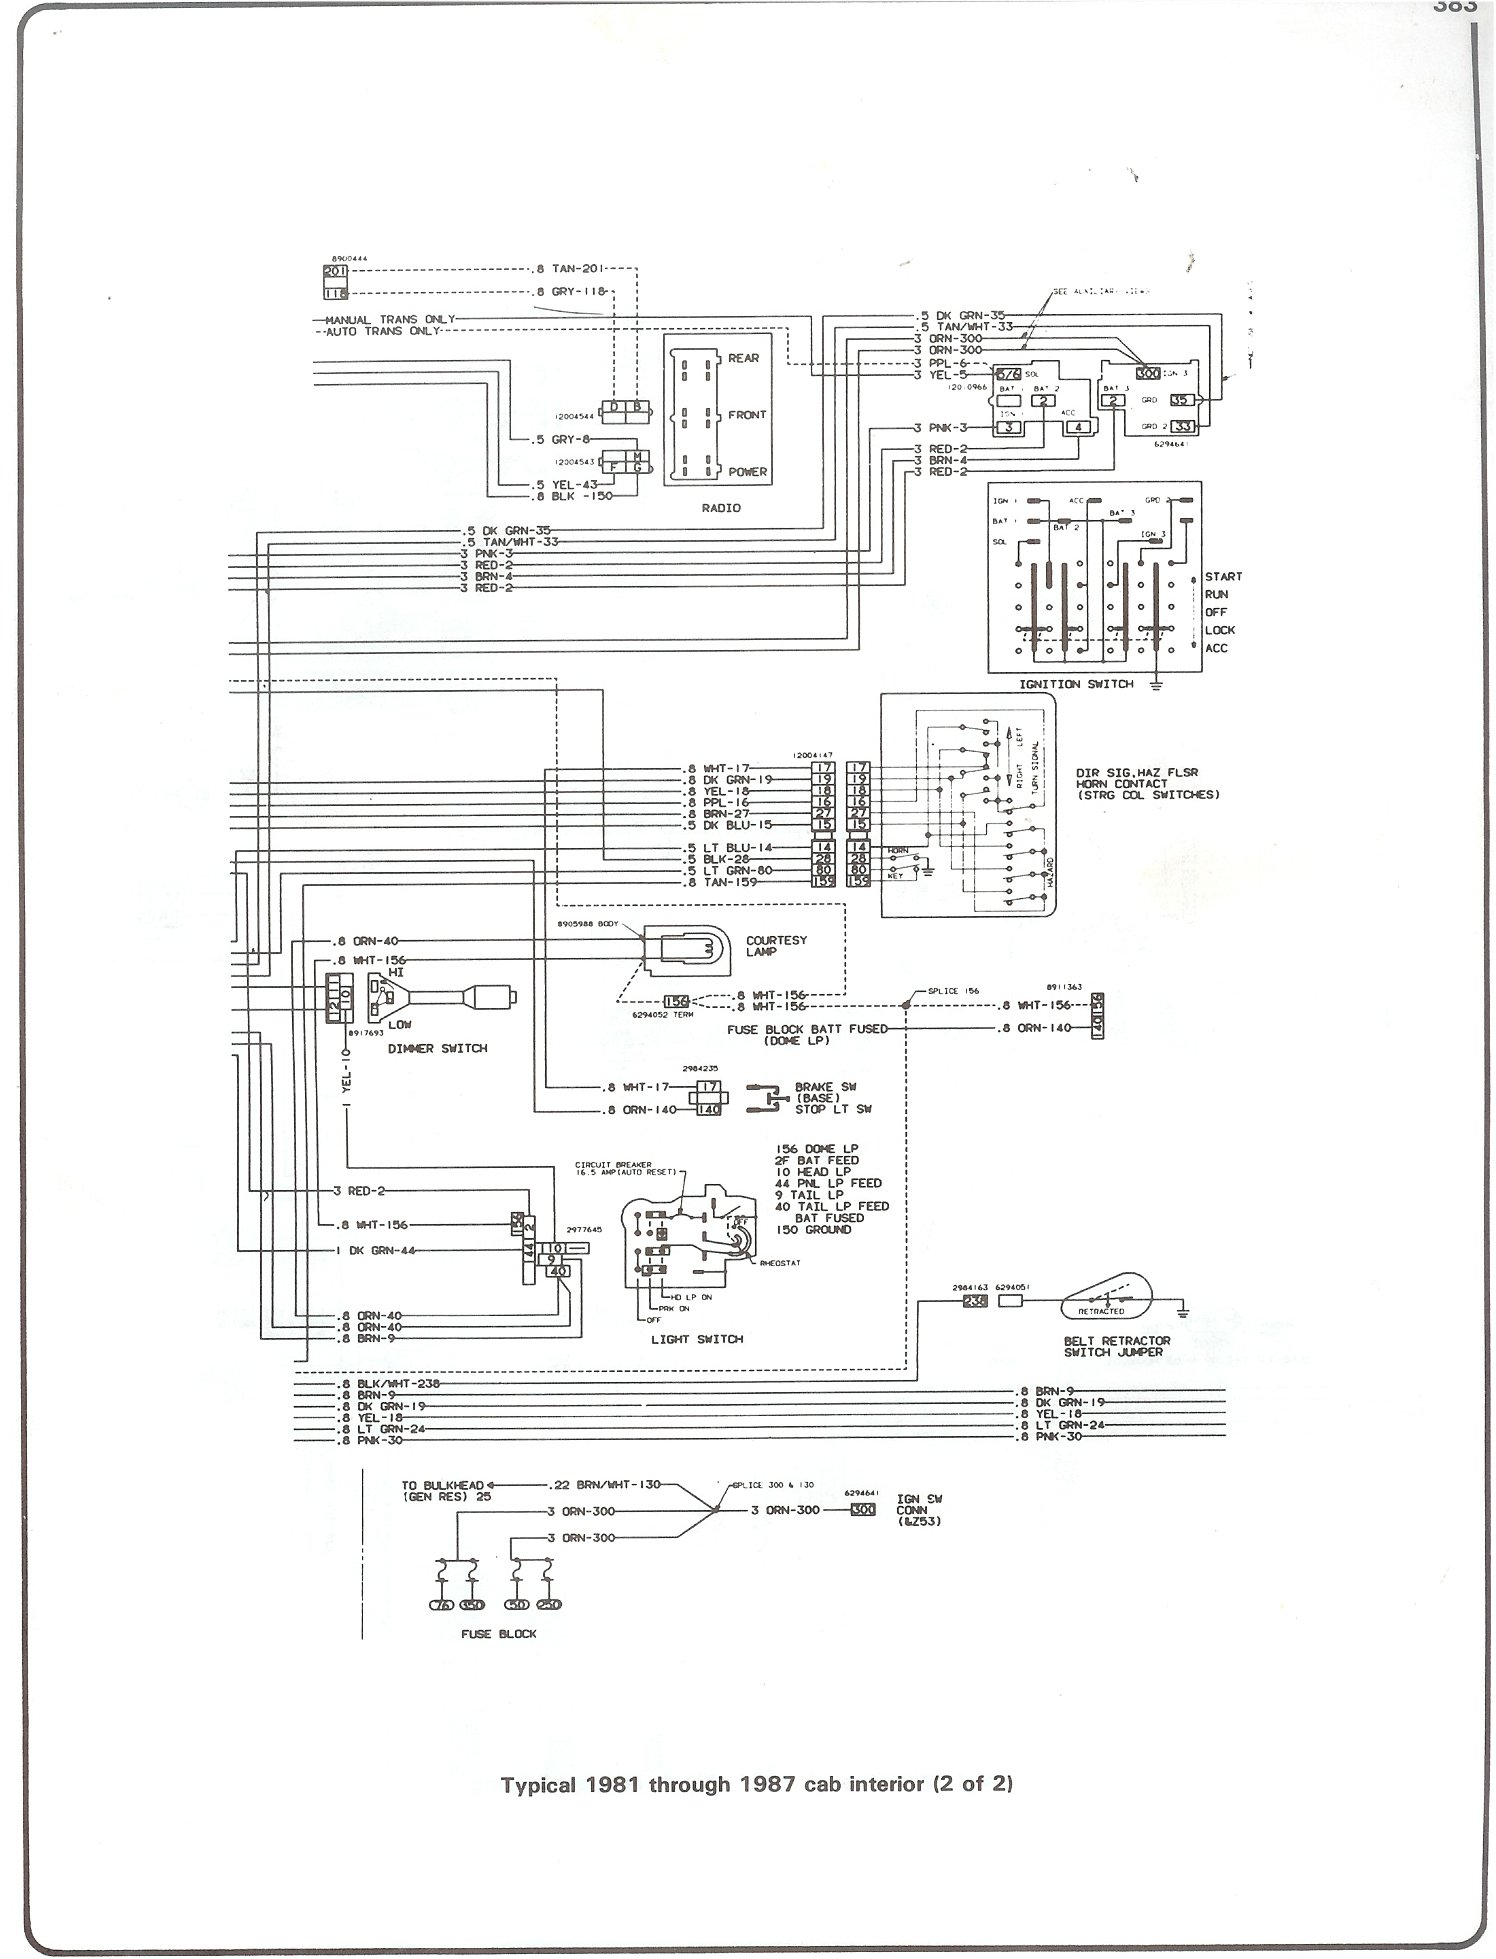 complete 73 87 wiring diagrams 2006 GMC Sierra Fuse Box Diagram 1980 gmc  truck fuse box